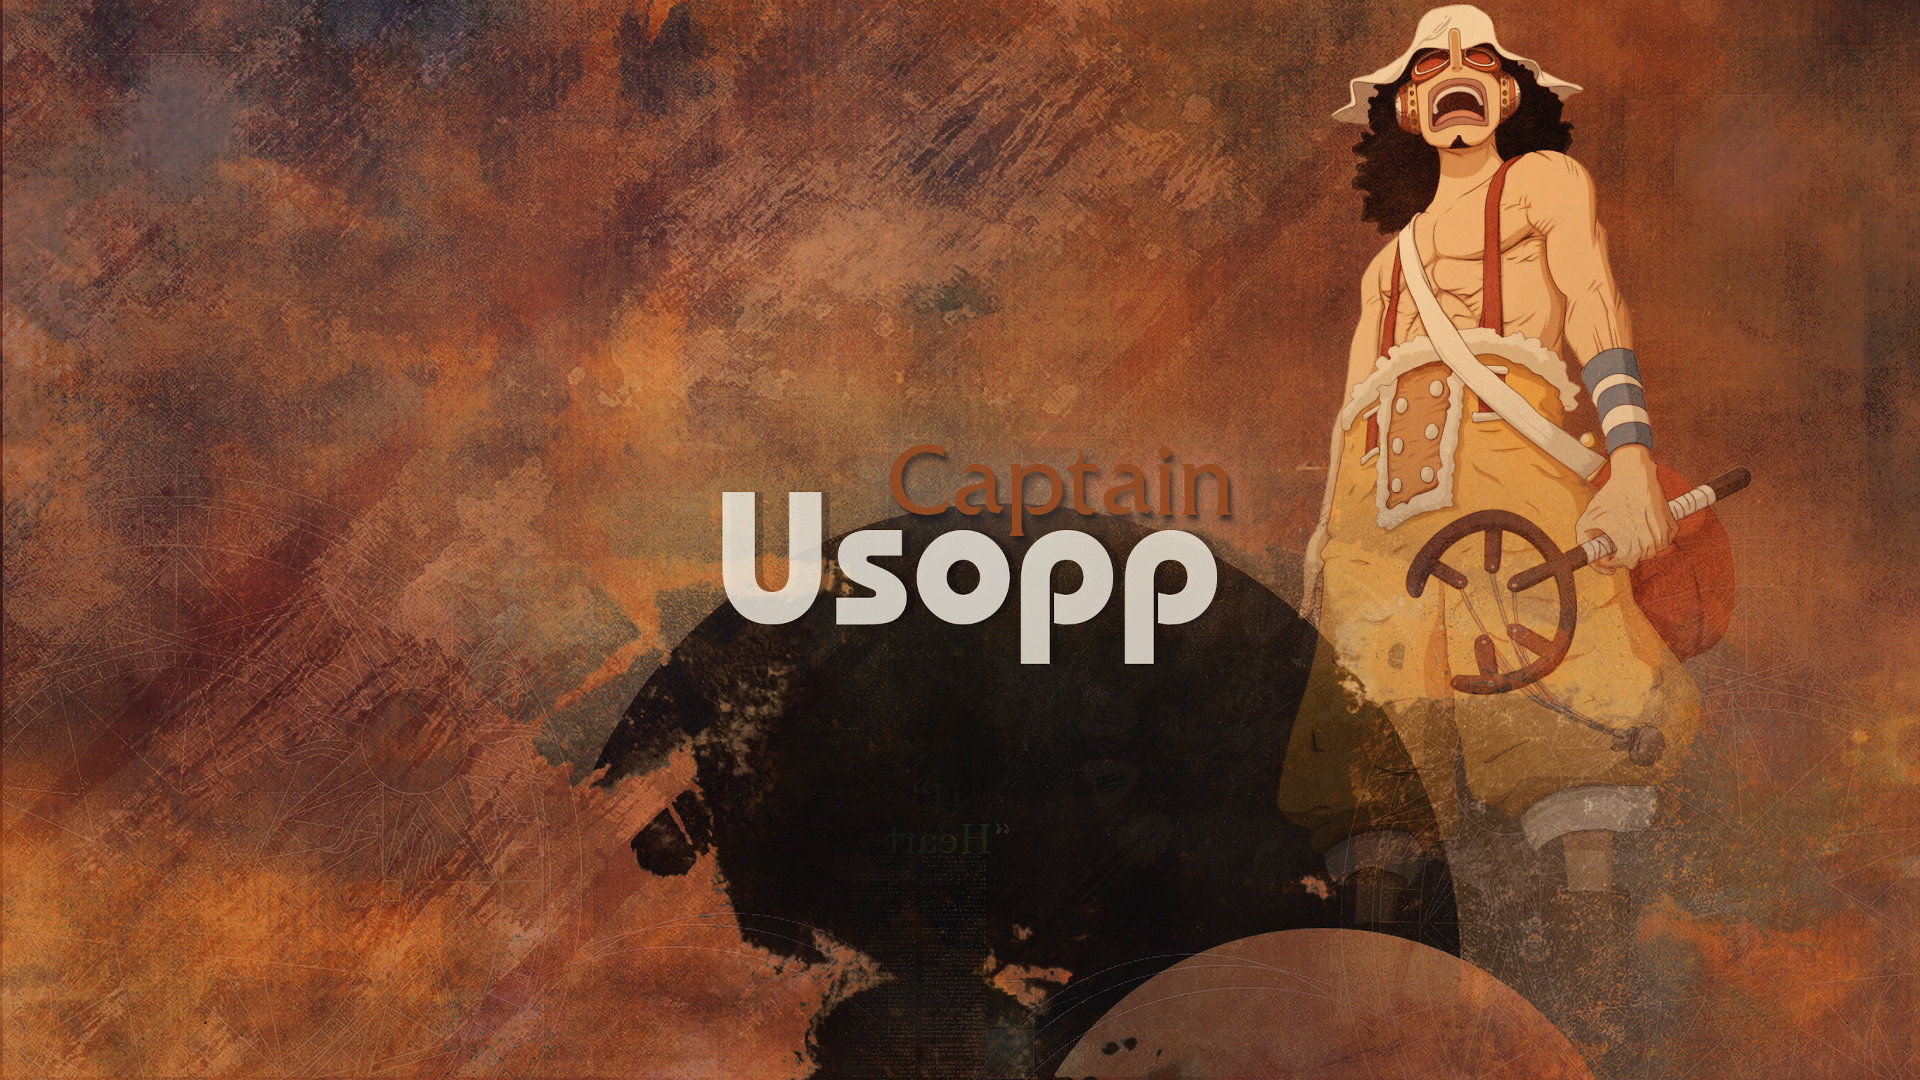 Download hd 1920x1080 Usopp (One Piece) PC background ID:314527 for free